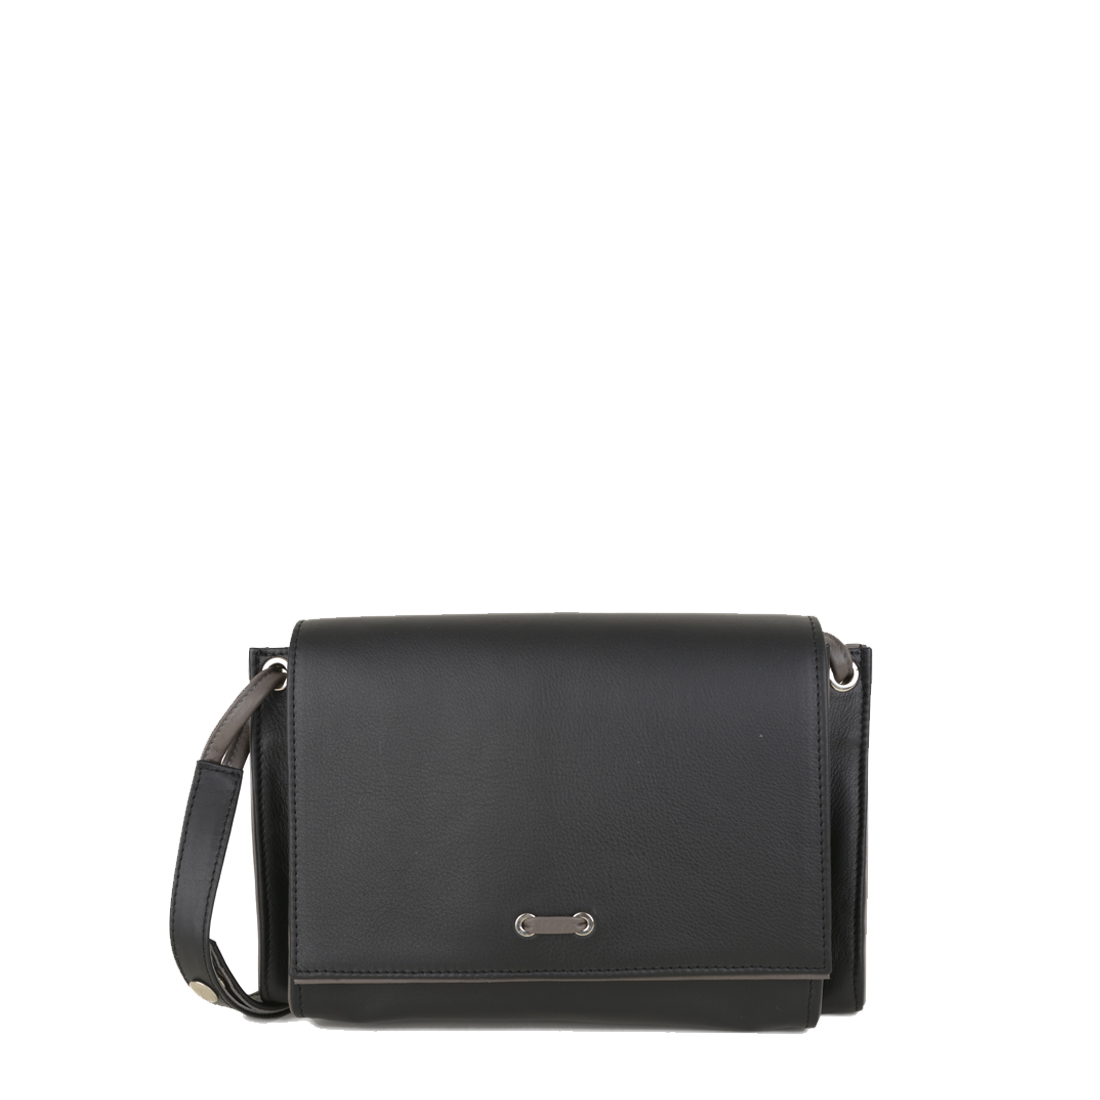 Isobel Black Grigio Leather Across Body Bag